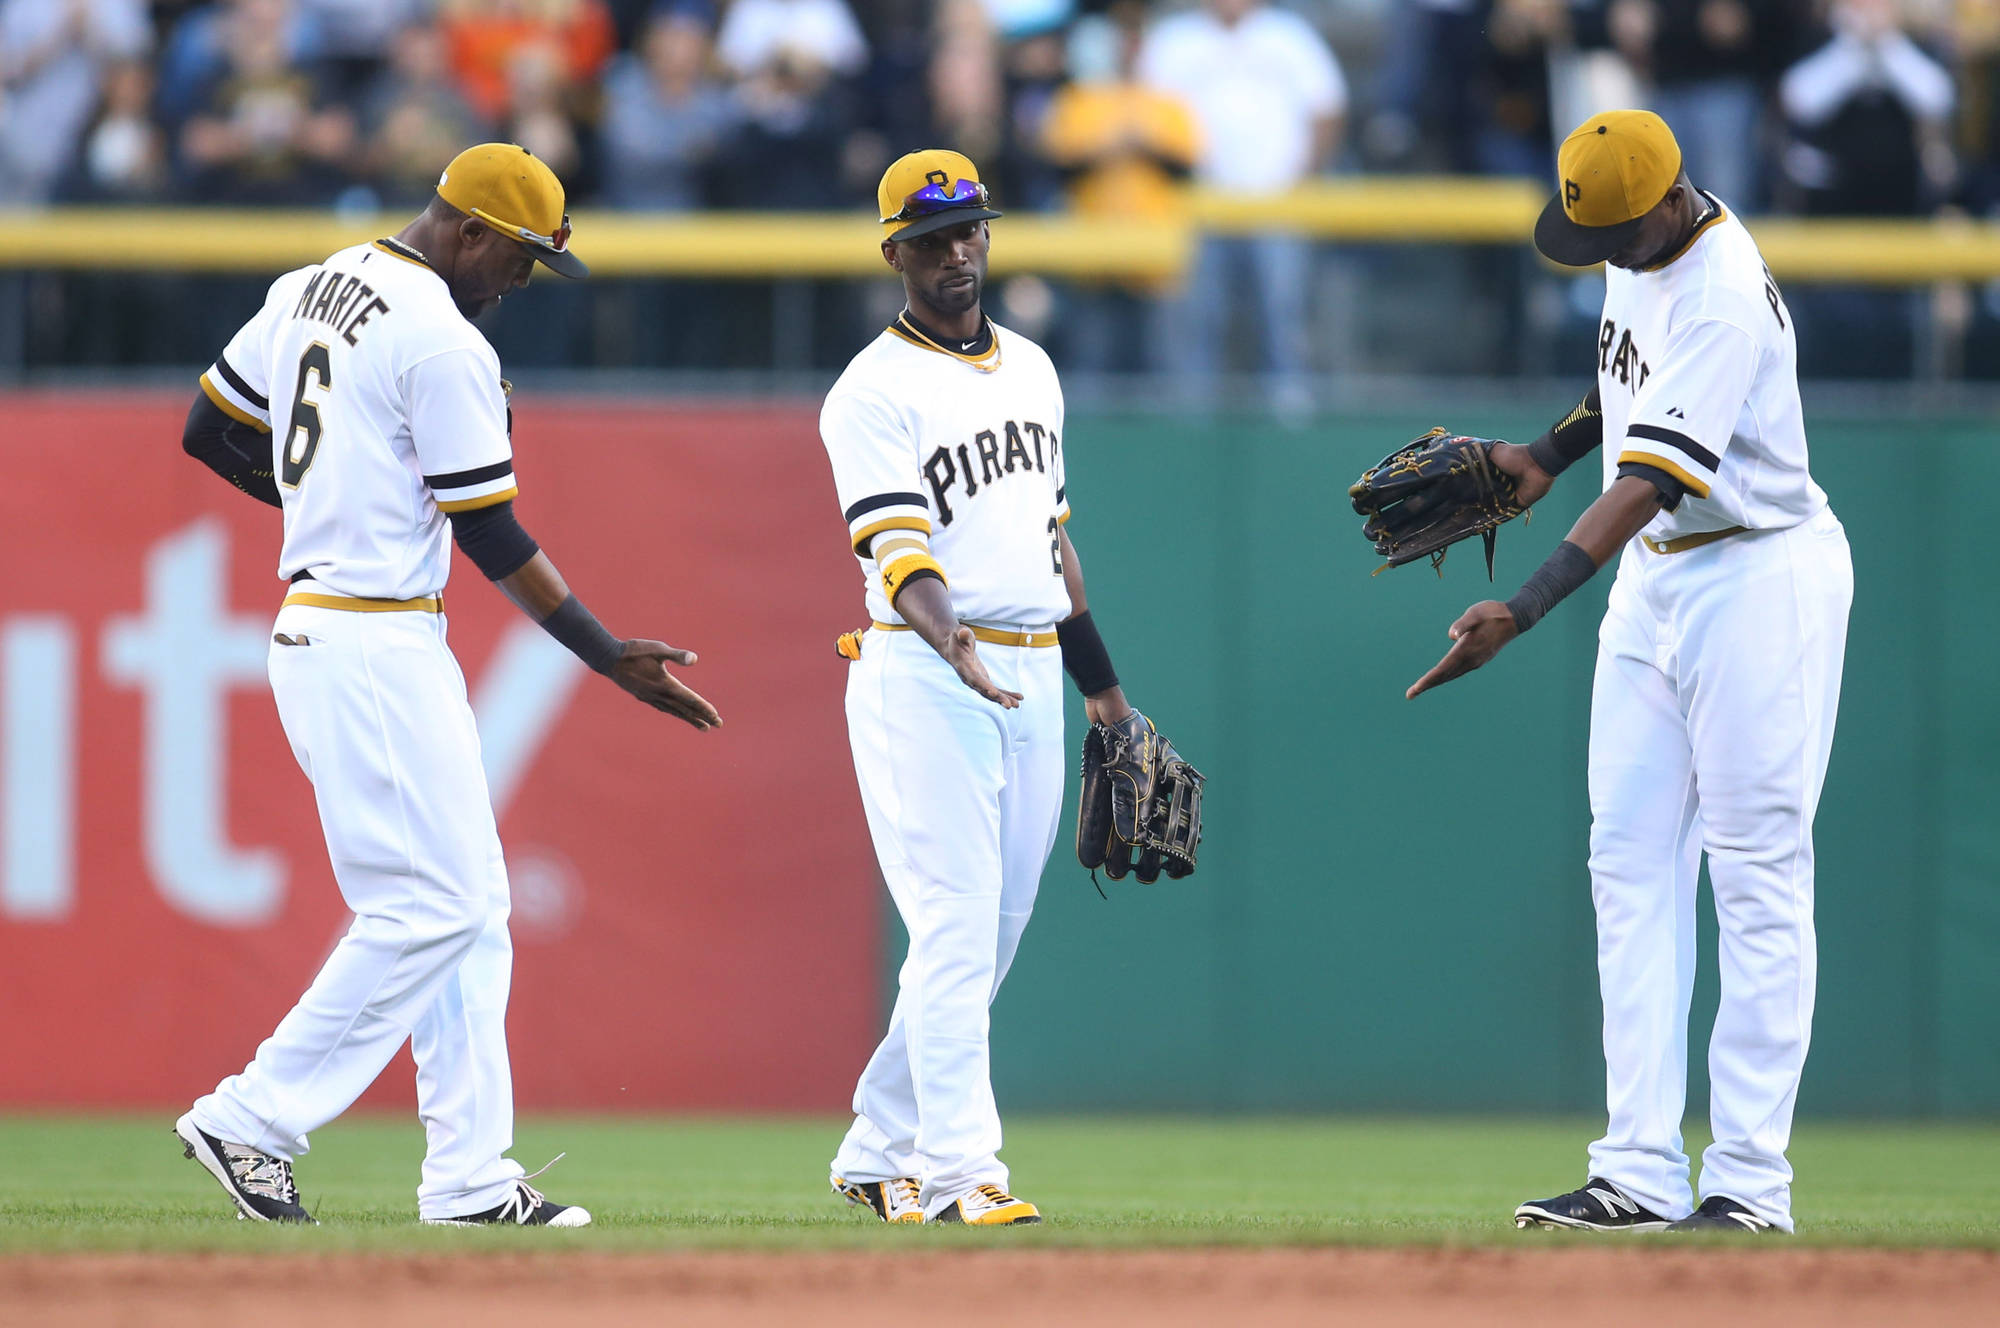 The best outfield in baseball: (L-R): Starling Marte, Andrew McCutchen, and Gregory Polanco.